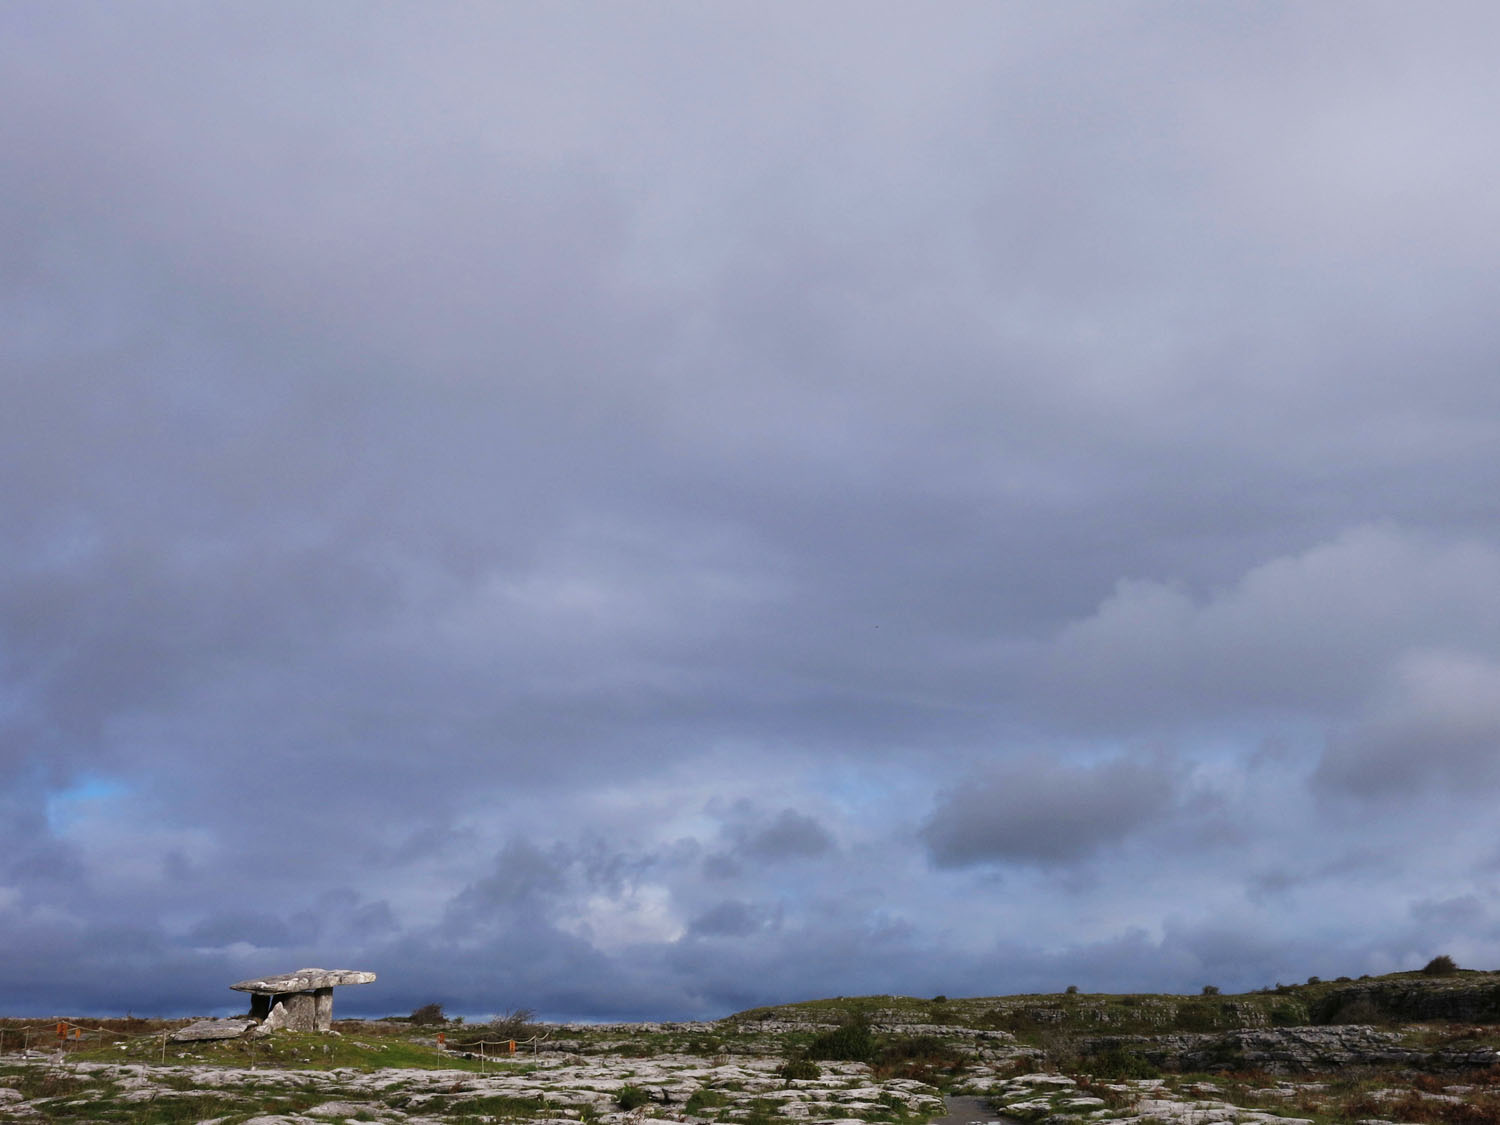 Ireland-Sights-And-Scenery-The-Burren